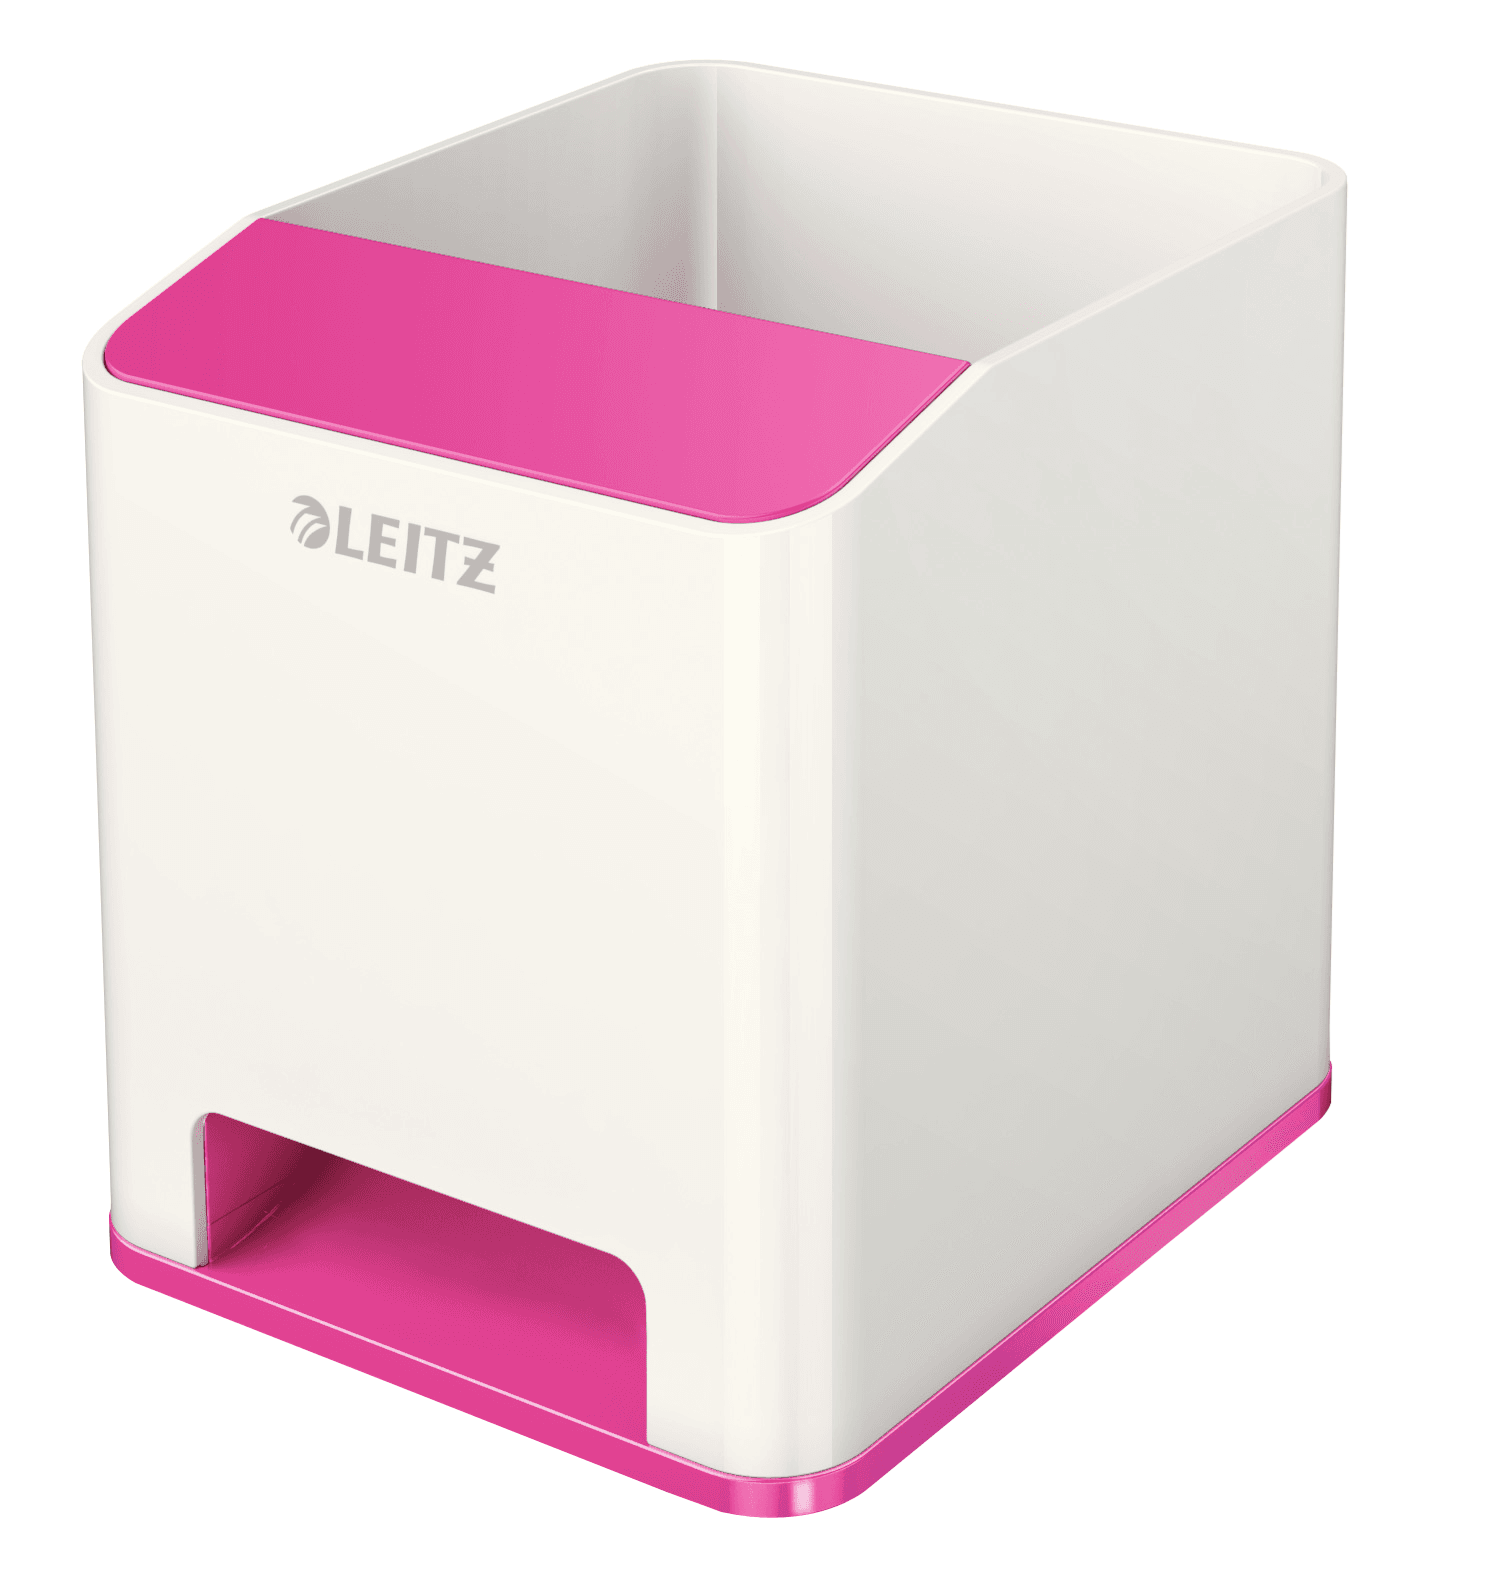 Leitz WOW Duo Colour Sound Pen Holder Pink 536310023 (PK1)